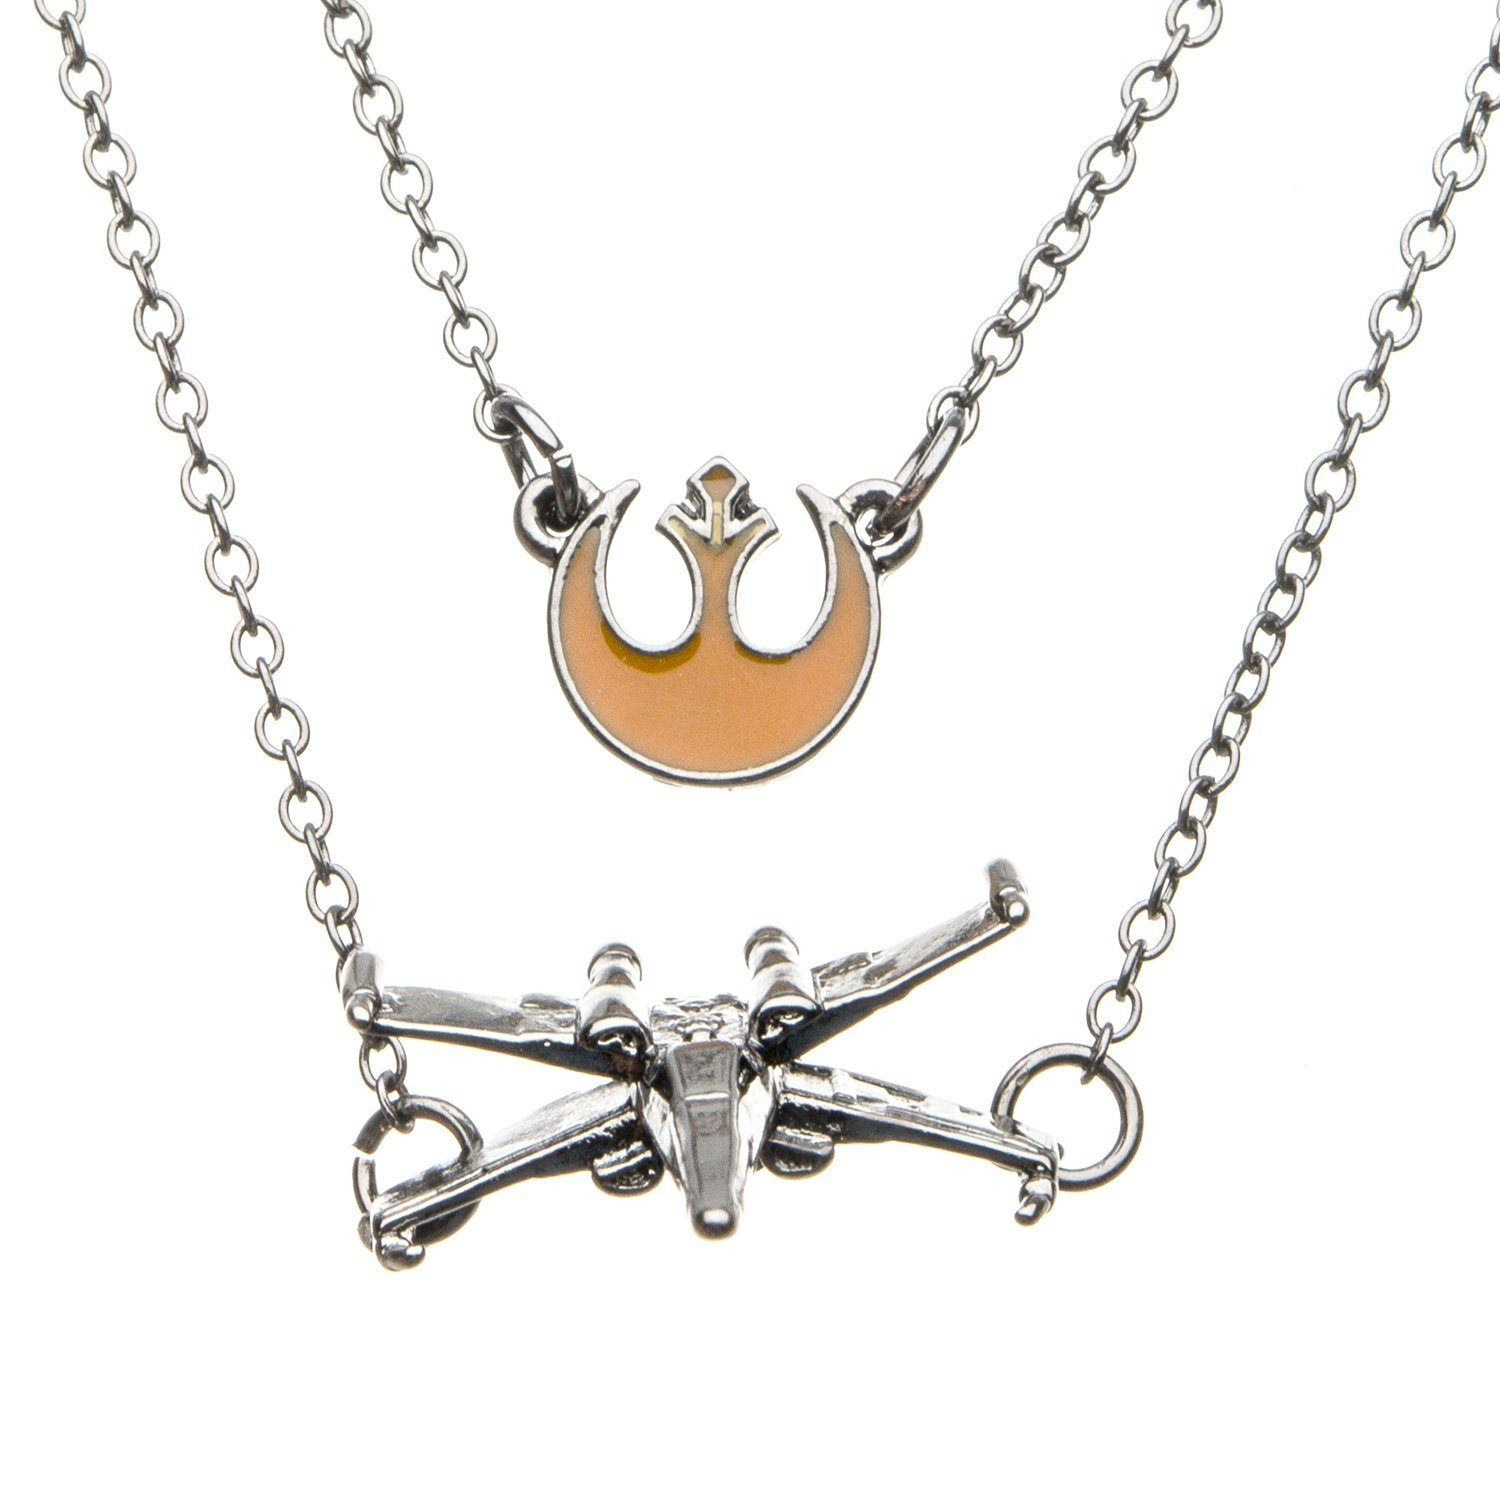 Women's Star Wars Episode 8 Rebel Poe Dameron X-Wing Tiered Pendant Necklace on Amazon